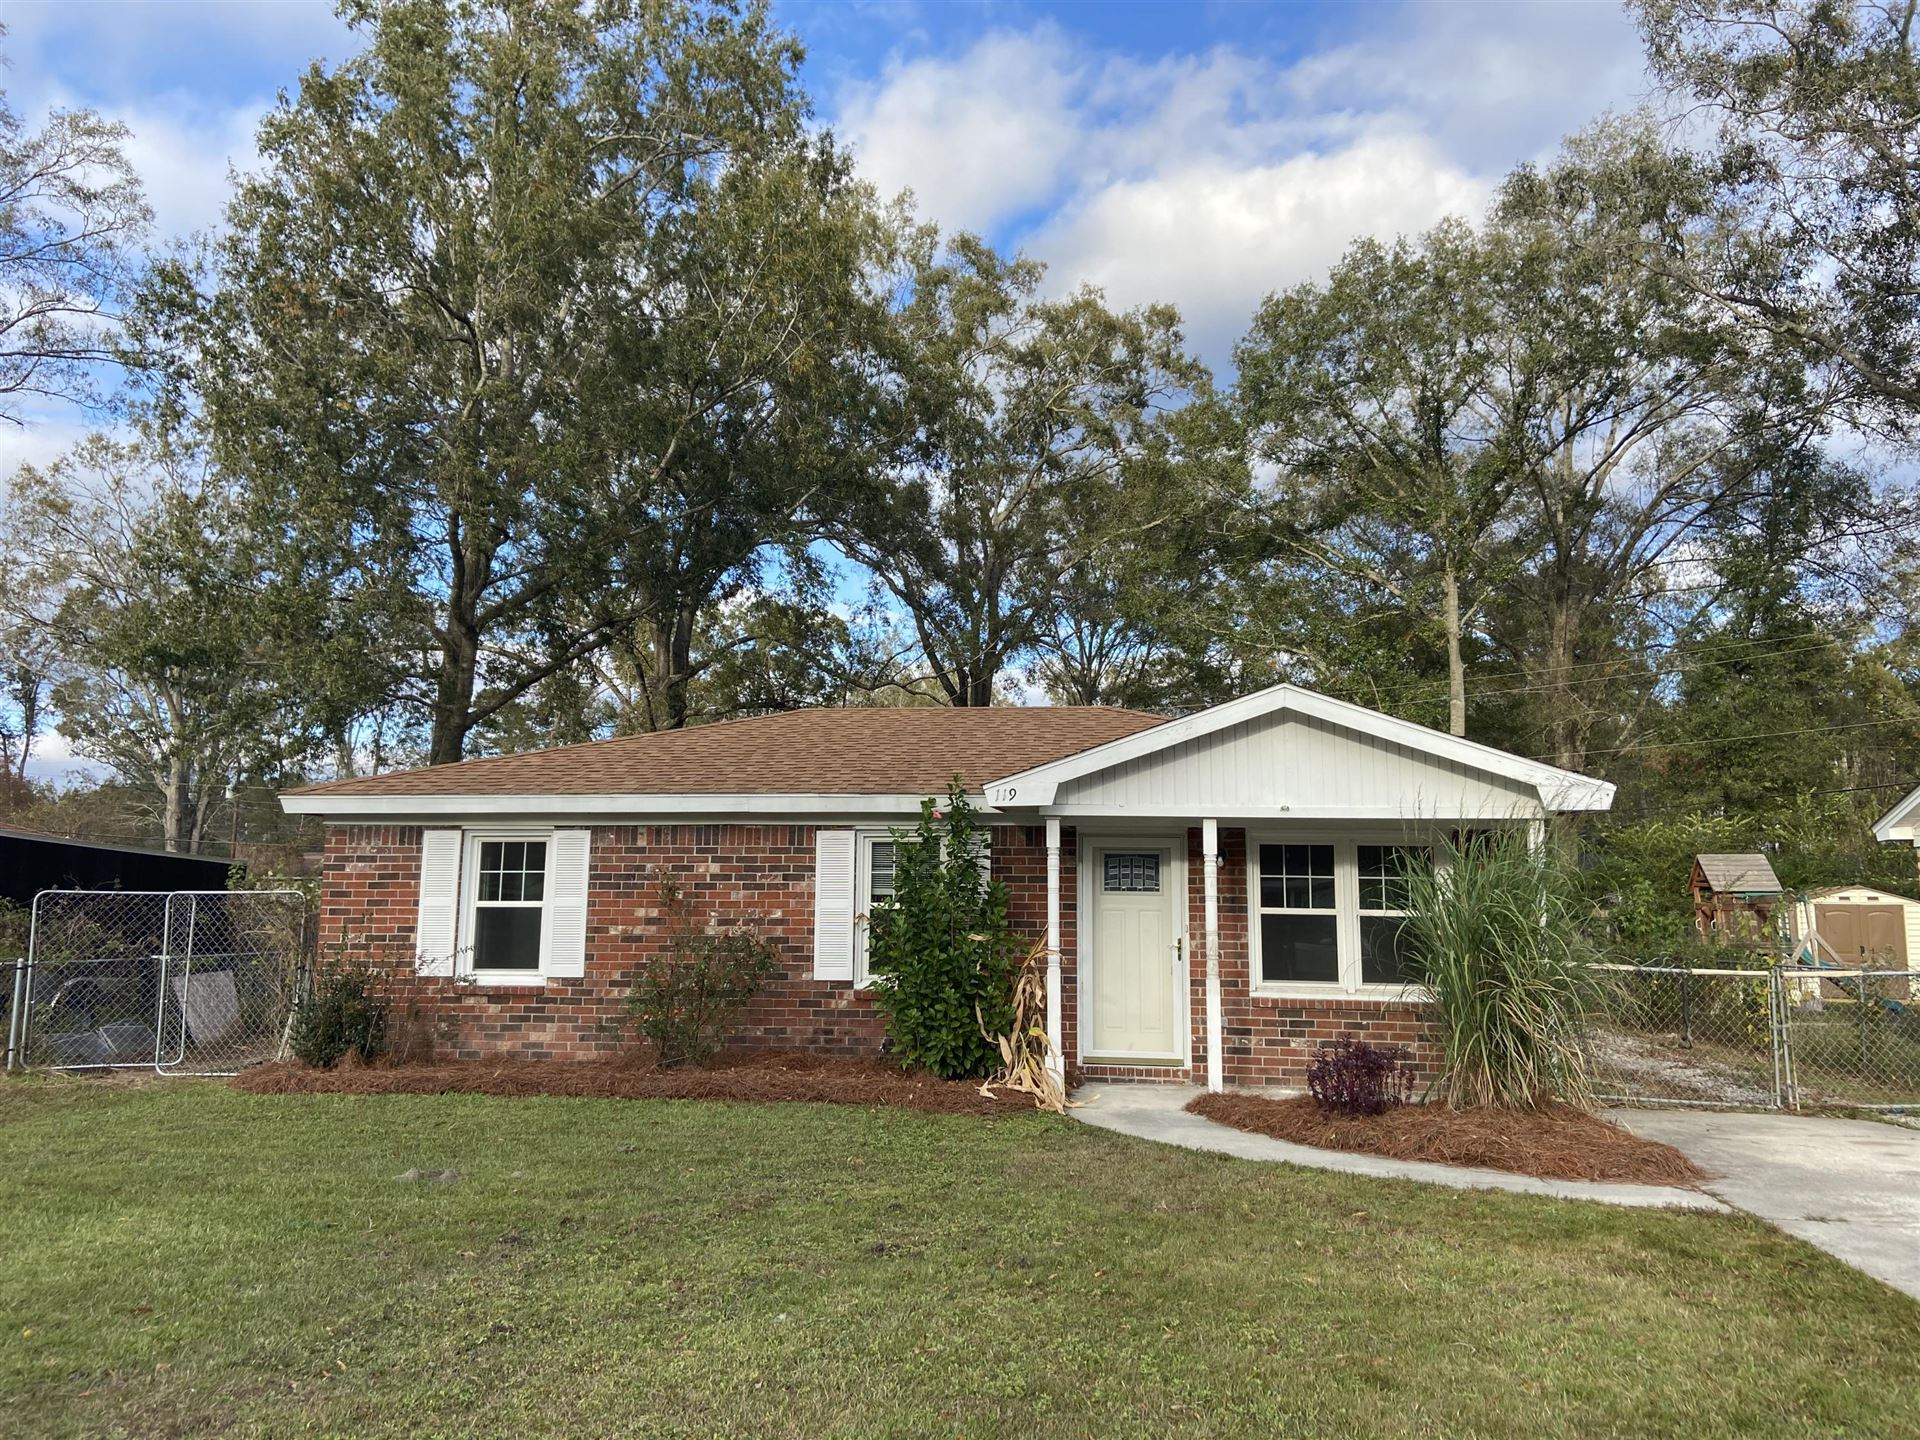 Photo of 119 Dorchester Manor Boulevard, North Charleston, SC 29420 (MLS # 20032107)